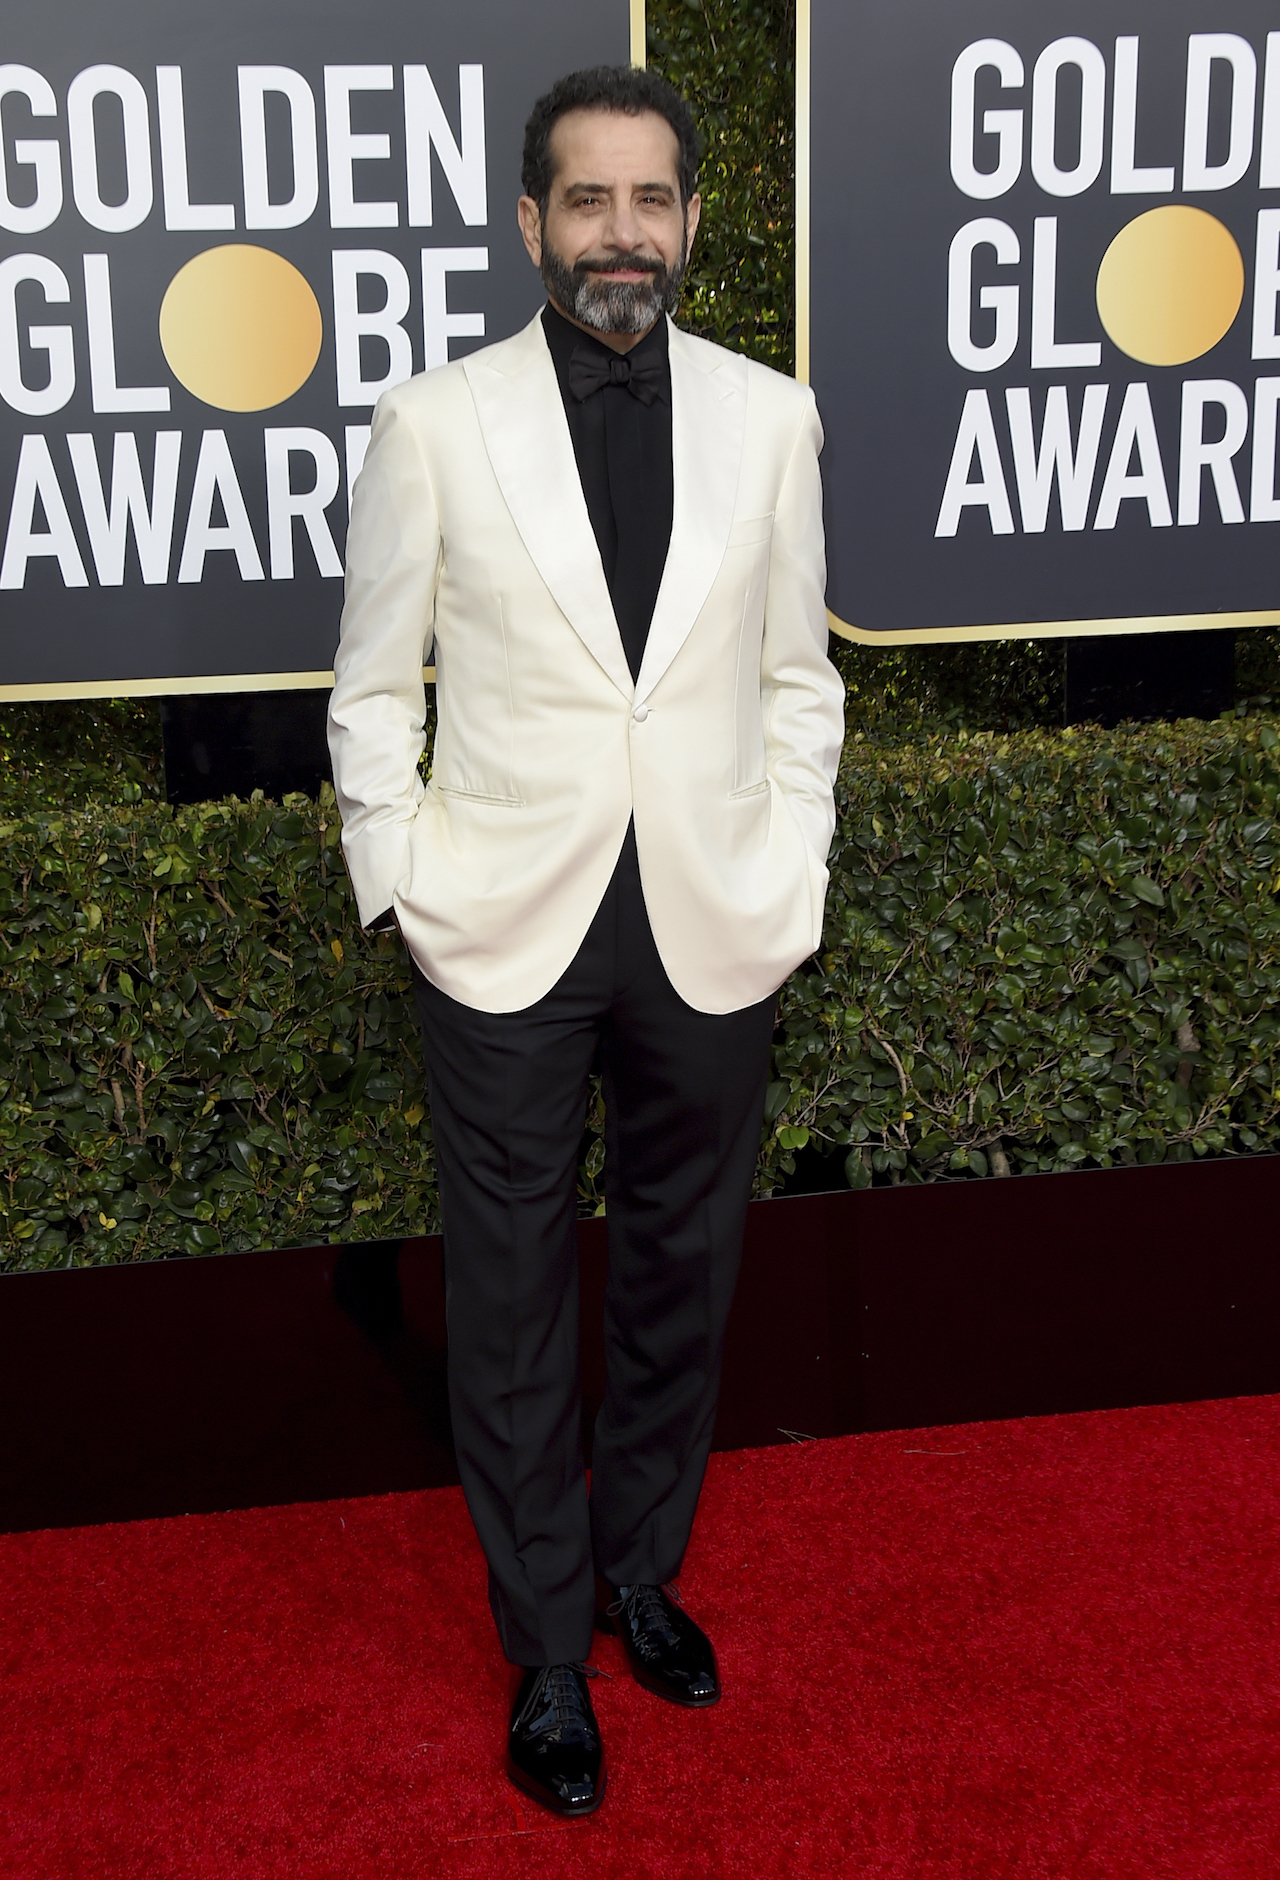 <div class='meta'><div class='origin-logo' data-origin='AP'></div><span class='caption-text' data-credit='Jordan Strauss/Invision/AP'>Tony Shalhoub arrives at the 76th annual Golden Globe Awards at the Beverly Hilton Hotel on Sunday, Jan. 6, 2019, in Beverly Hills, Calif.</span></div>